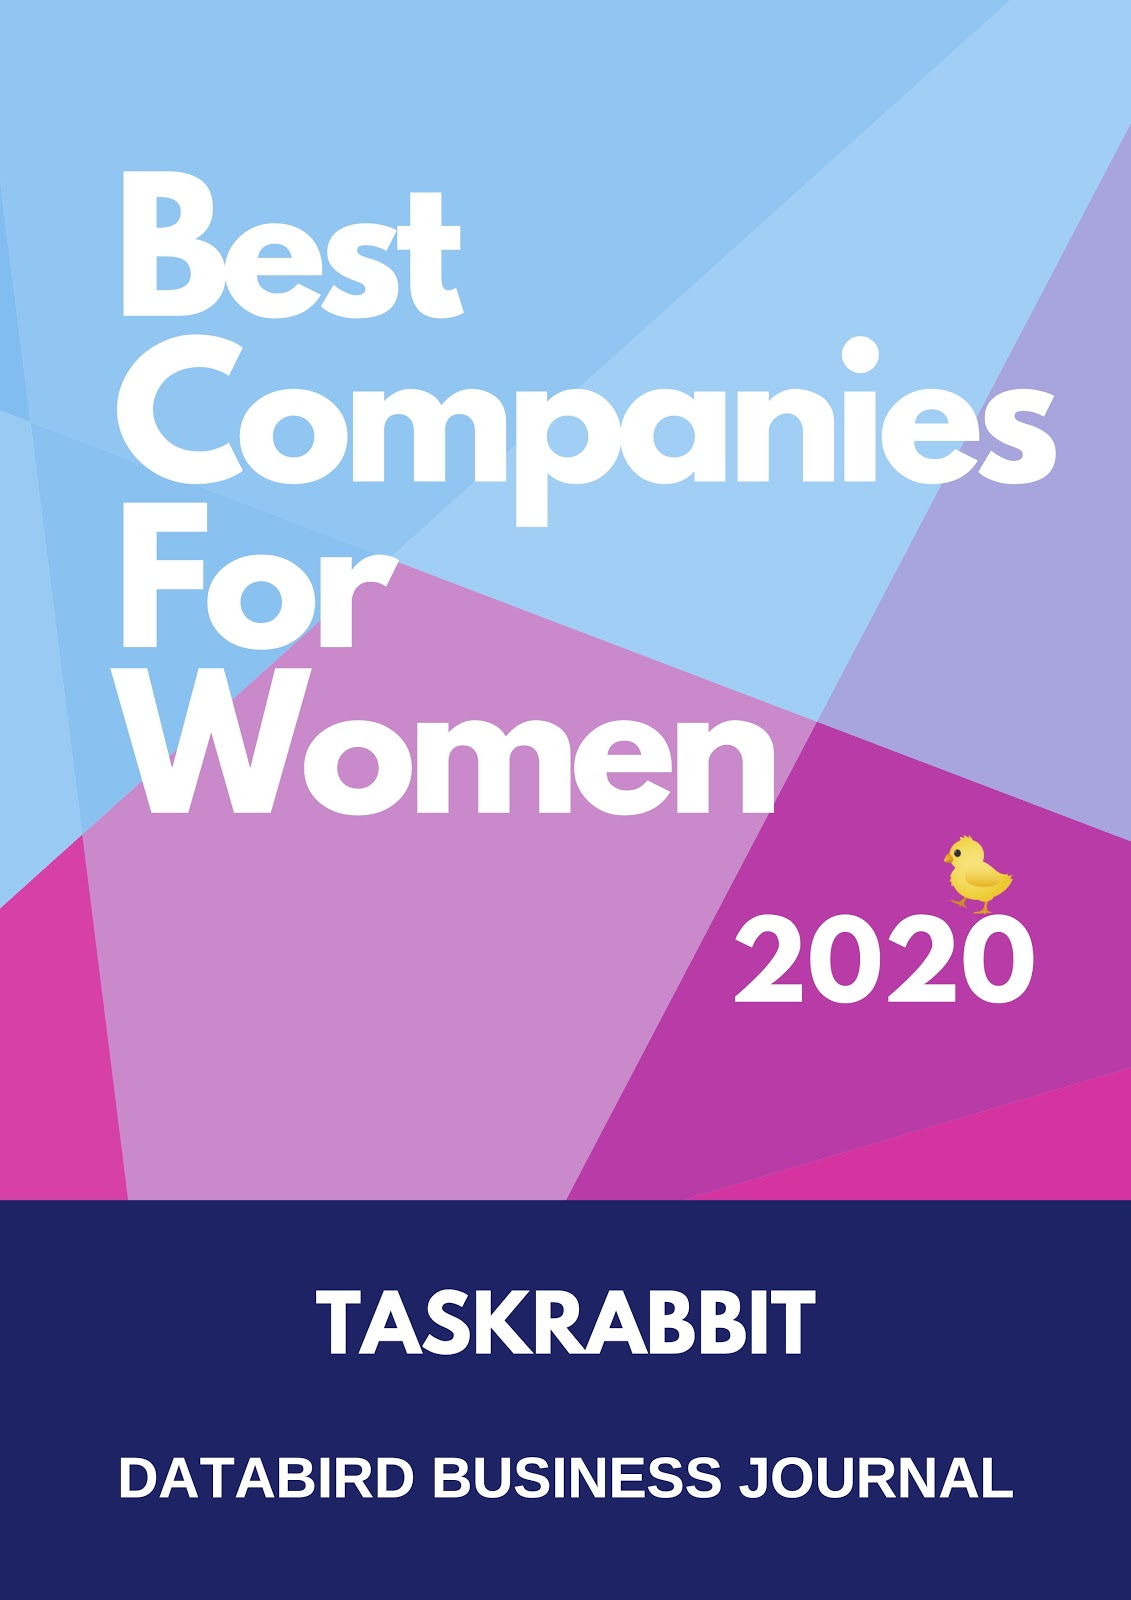 Best Companies for Women